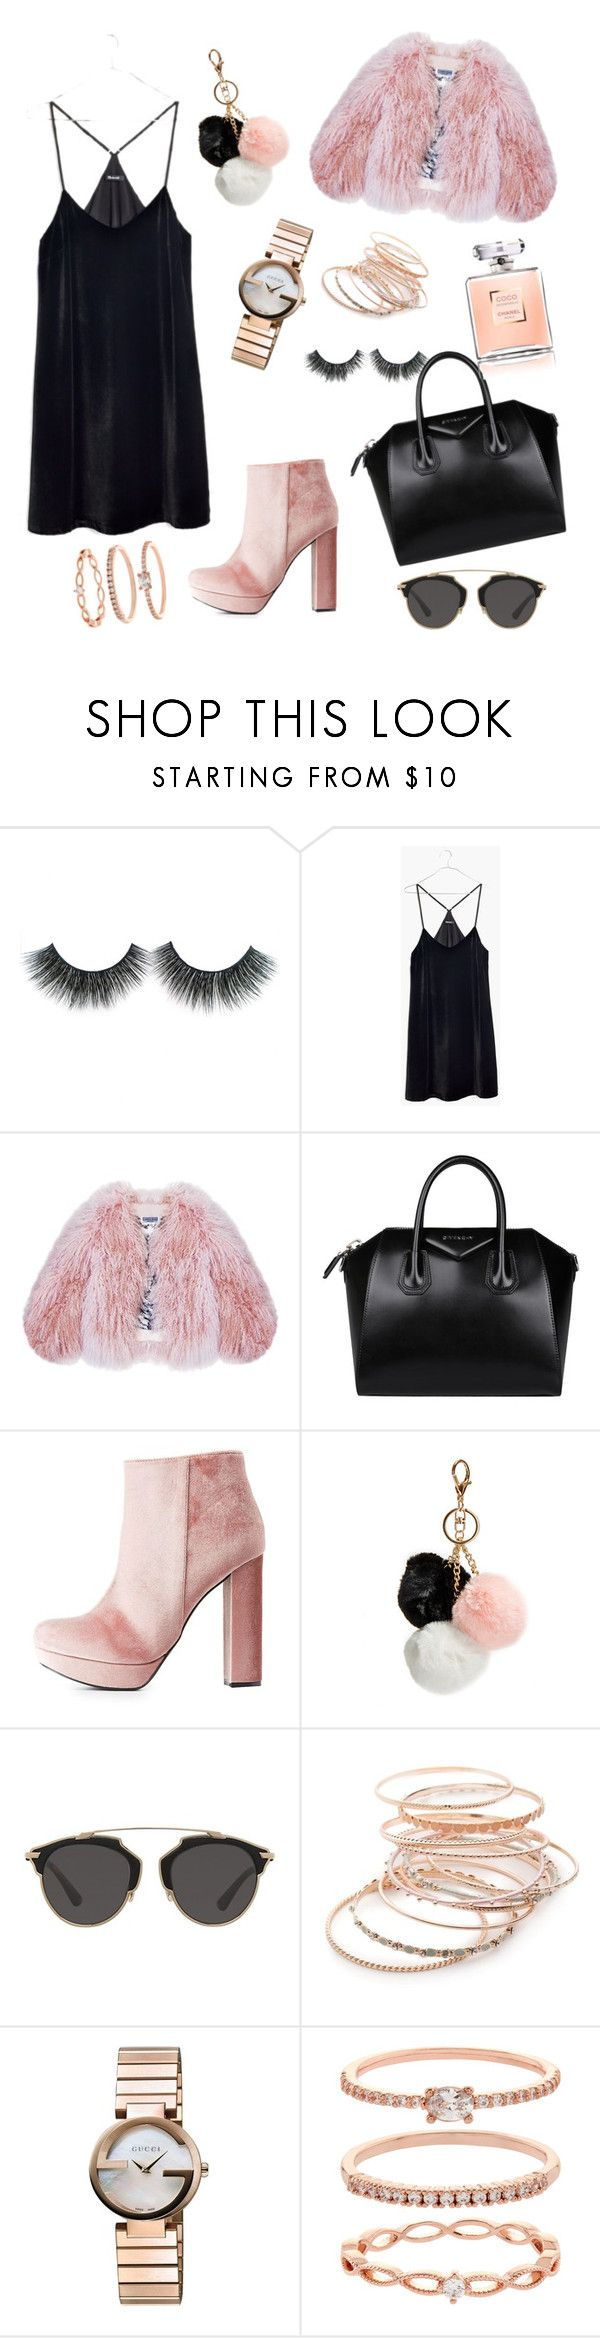 """Untitled #201"" by electraz on Polyvore featuring Madewell, Florence Bridge, Givenchy, Charlotte Russe, GUESS, Christian Dior, Red Camel, Gucci and Accessorize"